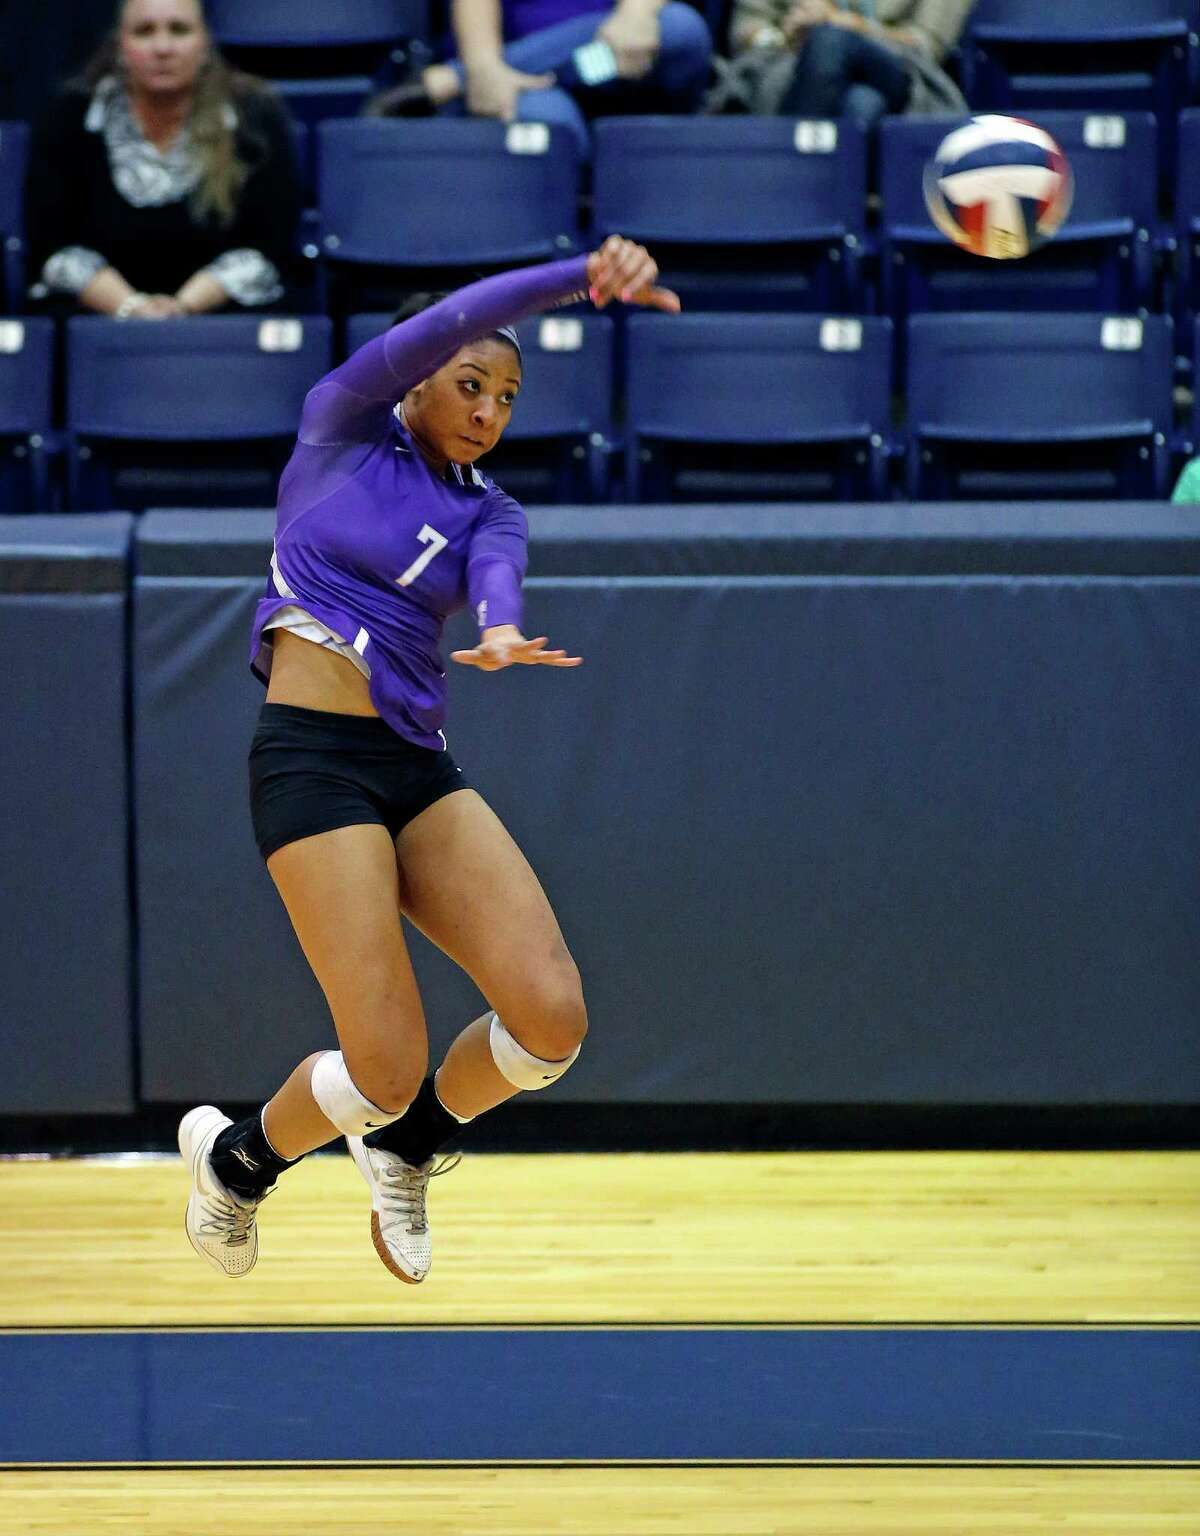 High school playoff match between George Ranch and Ridge Point at Coleman Coliseum, 1050 North Dairy Ashford. ID: Again and again Ridge Point #7 Caitlyn Cooper spikes the ball against her opponents. Tuesday November 11, 2014 (Craig H. Hartley/For the Chronicle)